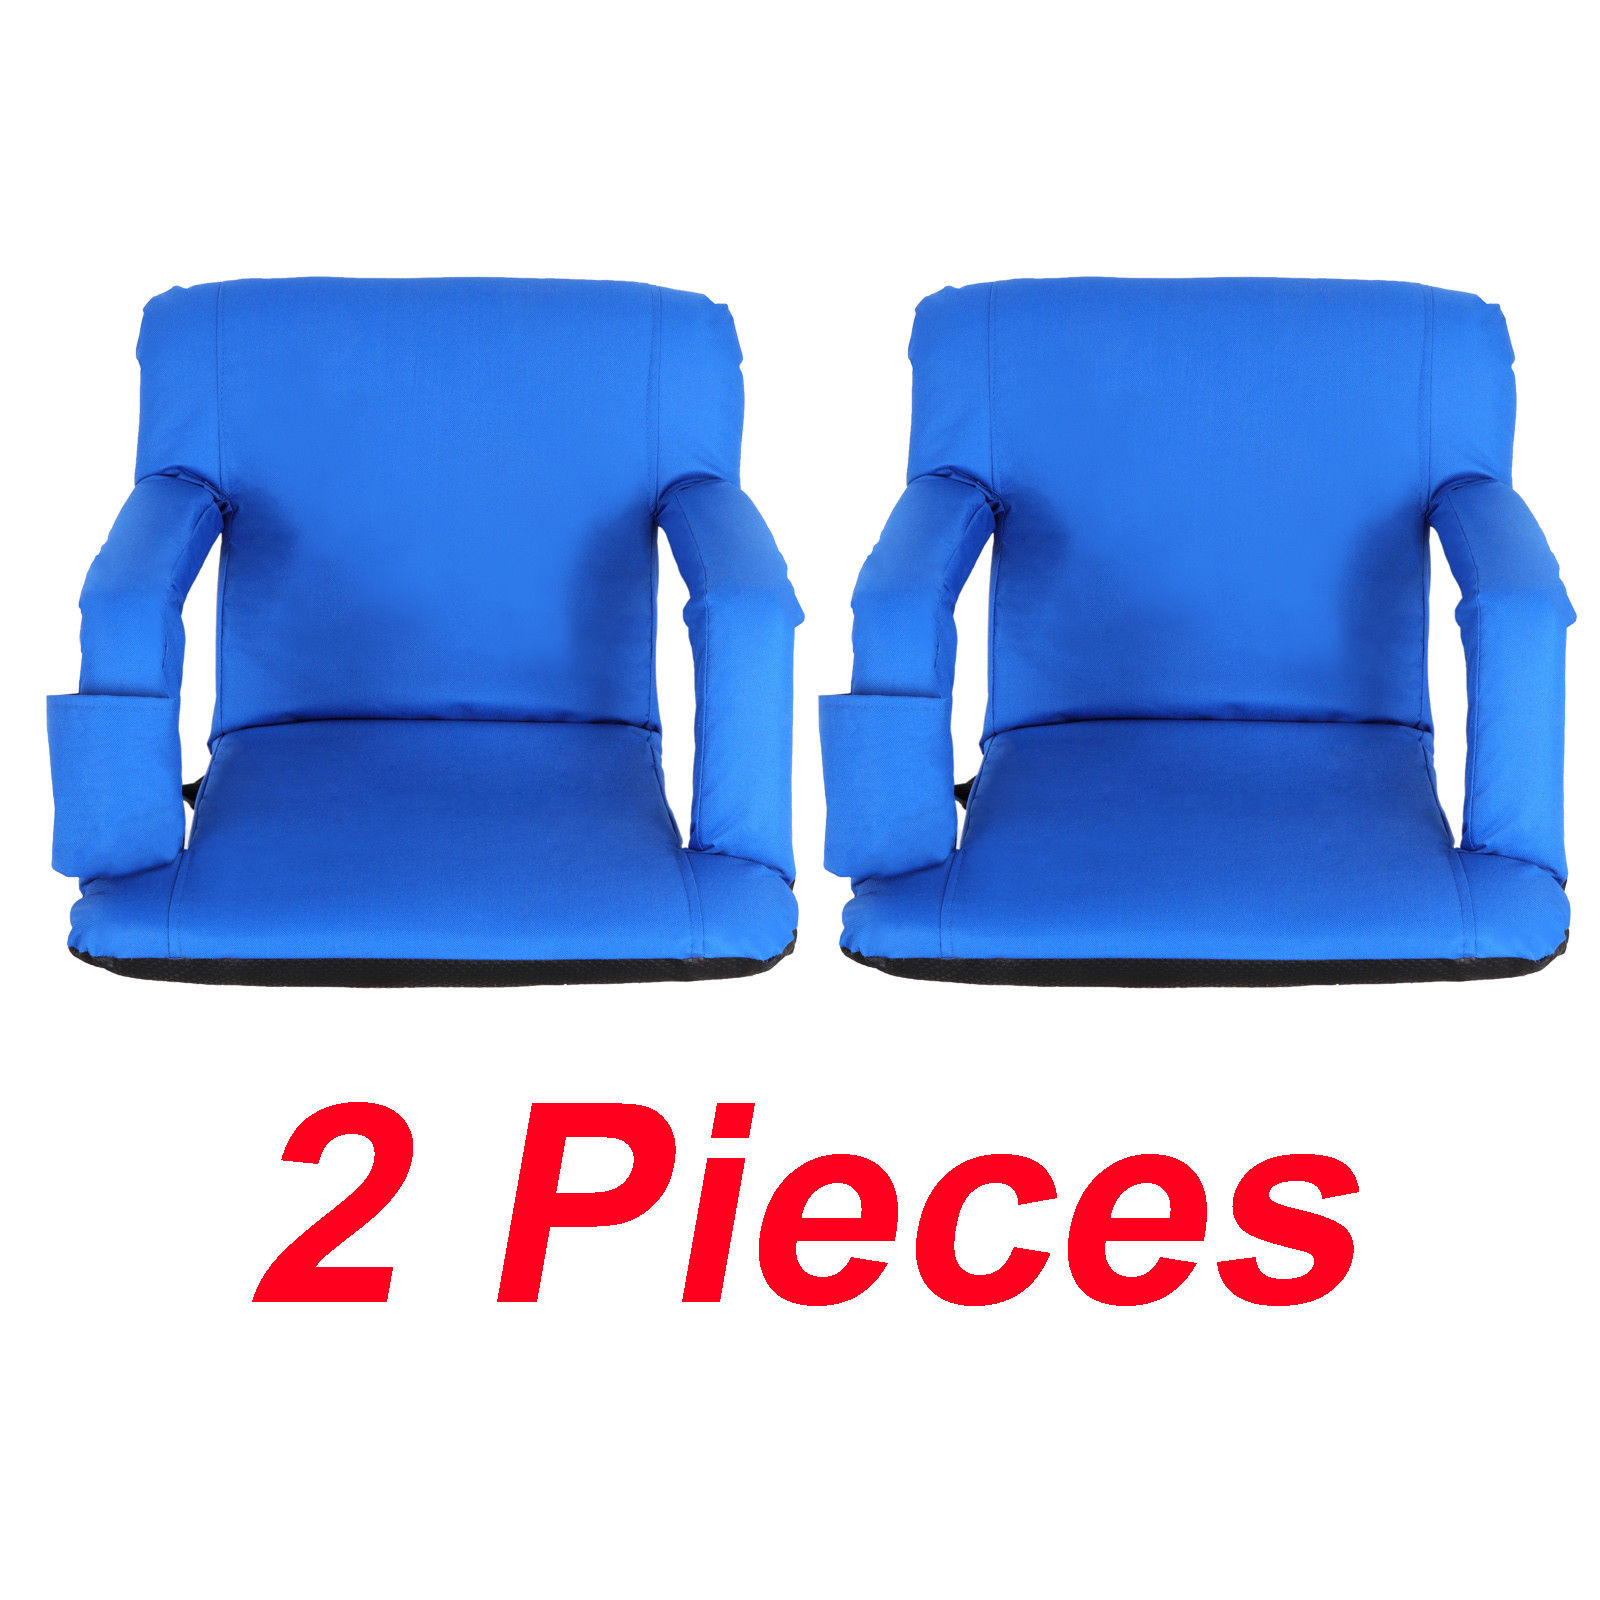 Zeny 2 Pieces Blue Wide Stadium Seat Chair Bleachers Benches 5 Reclining Positions by